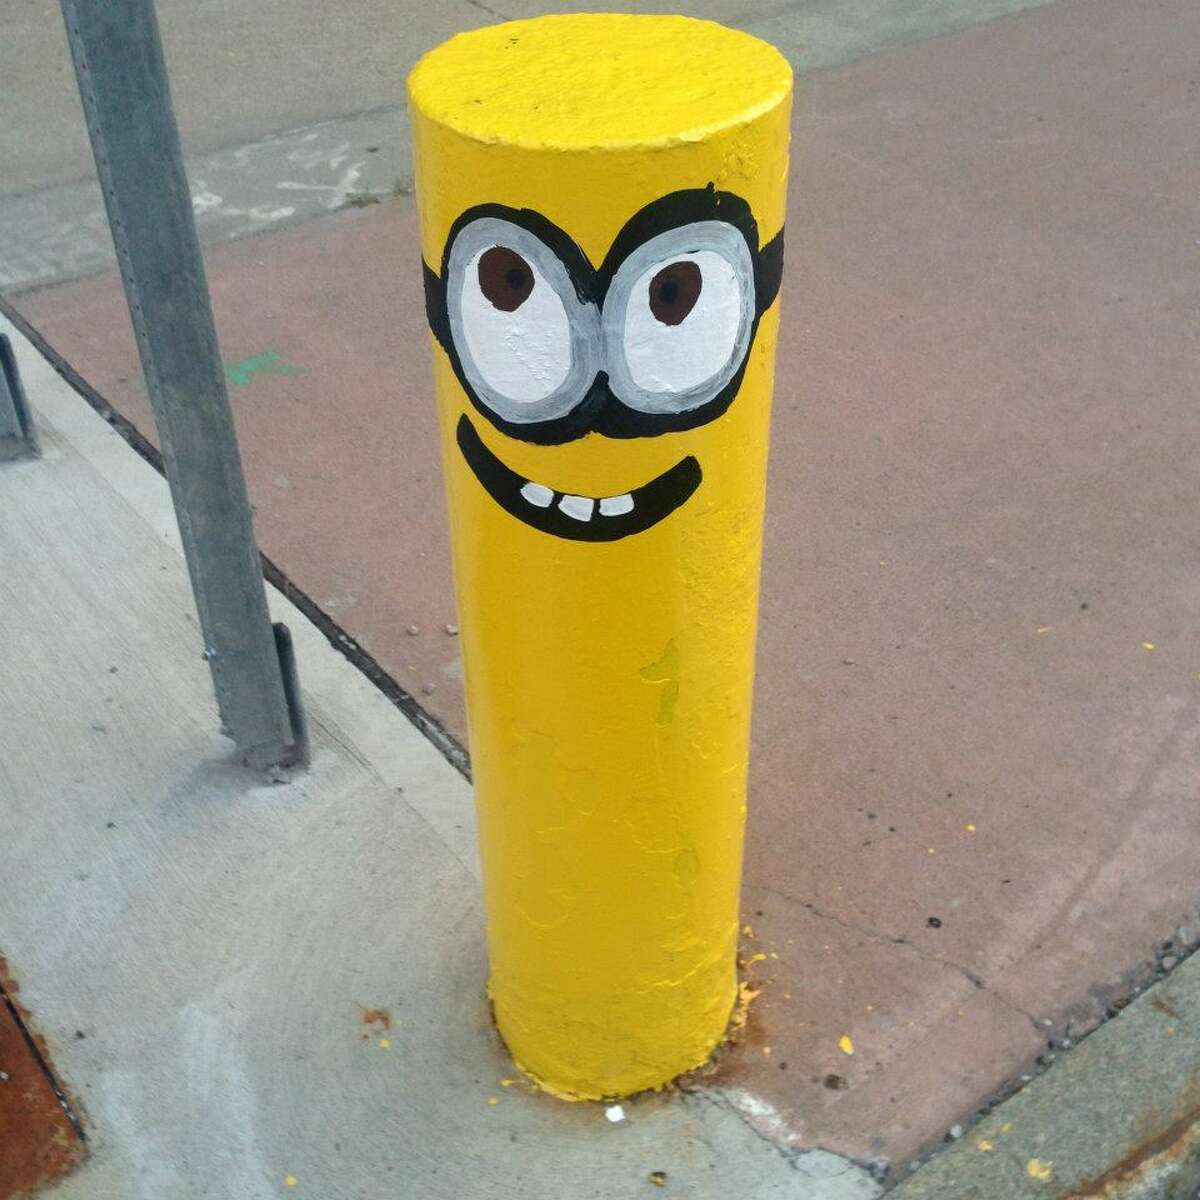 One of the MInions in downtown Amsterdam. City workers painted over the characters on Thursday. (Contributed photo.) ORG XMIT: lc6-HLfUdcCo1lFZFqRF